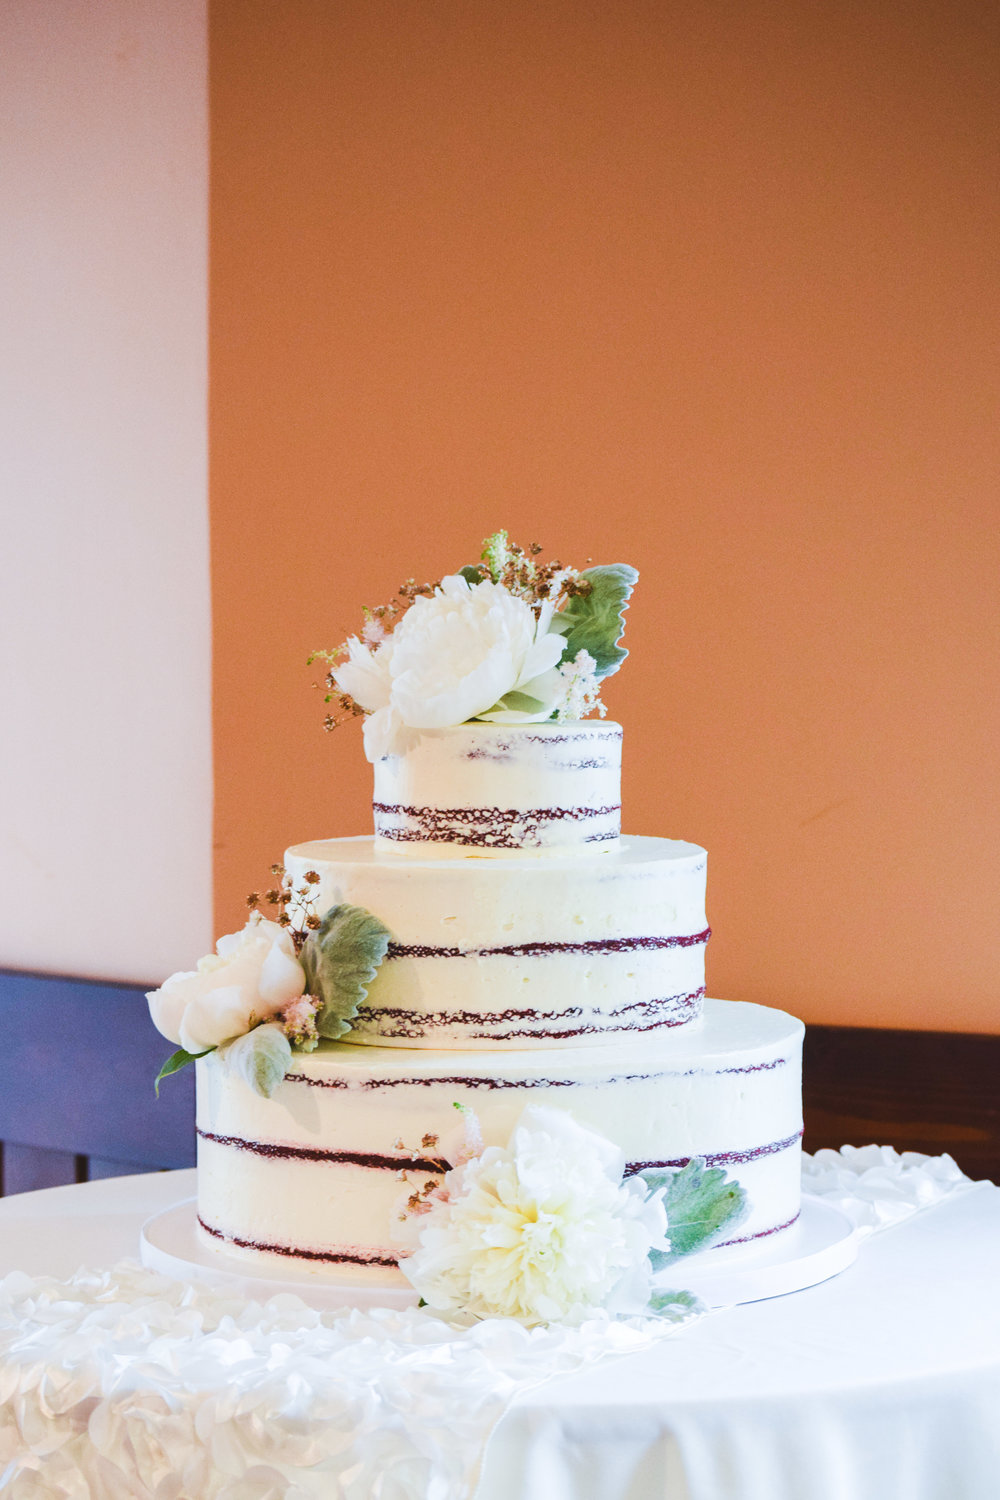 Jackie Edible Art Bakery Brainerd Wedding Cakes-9.jpg